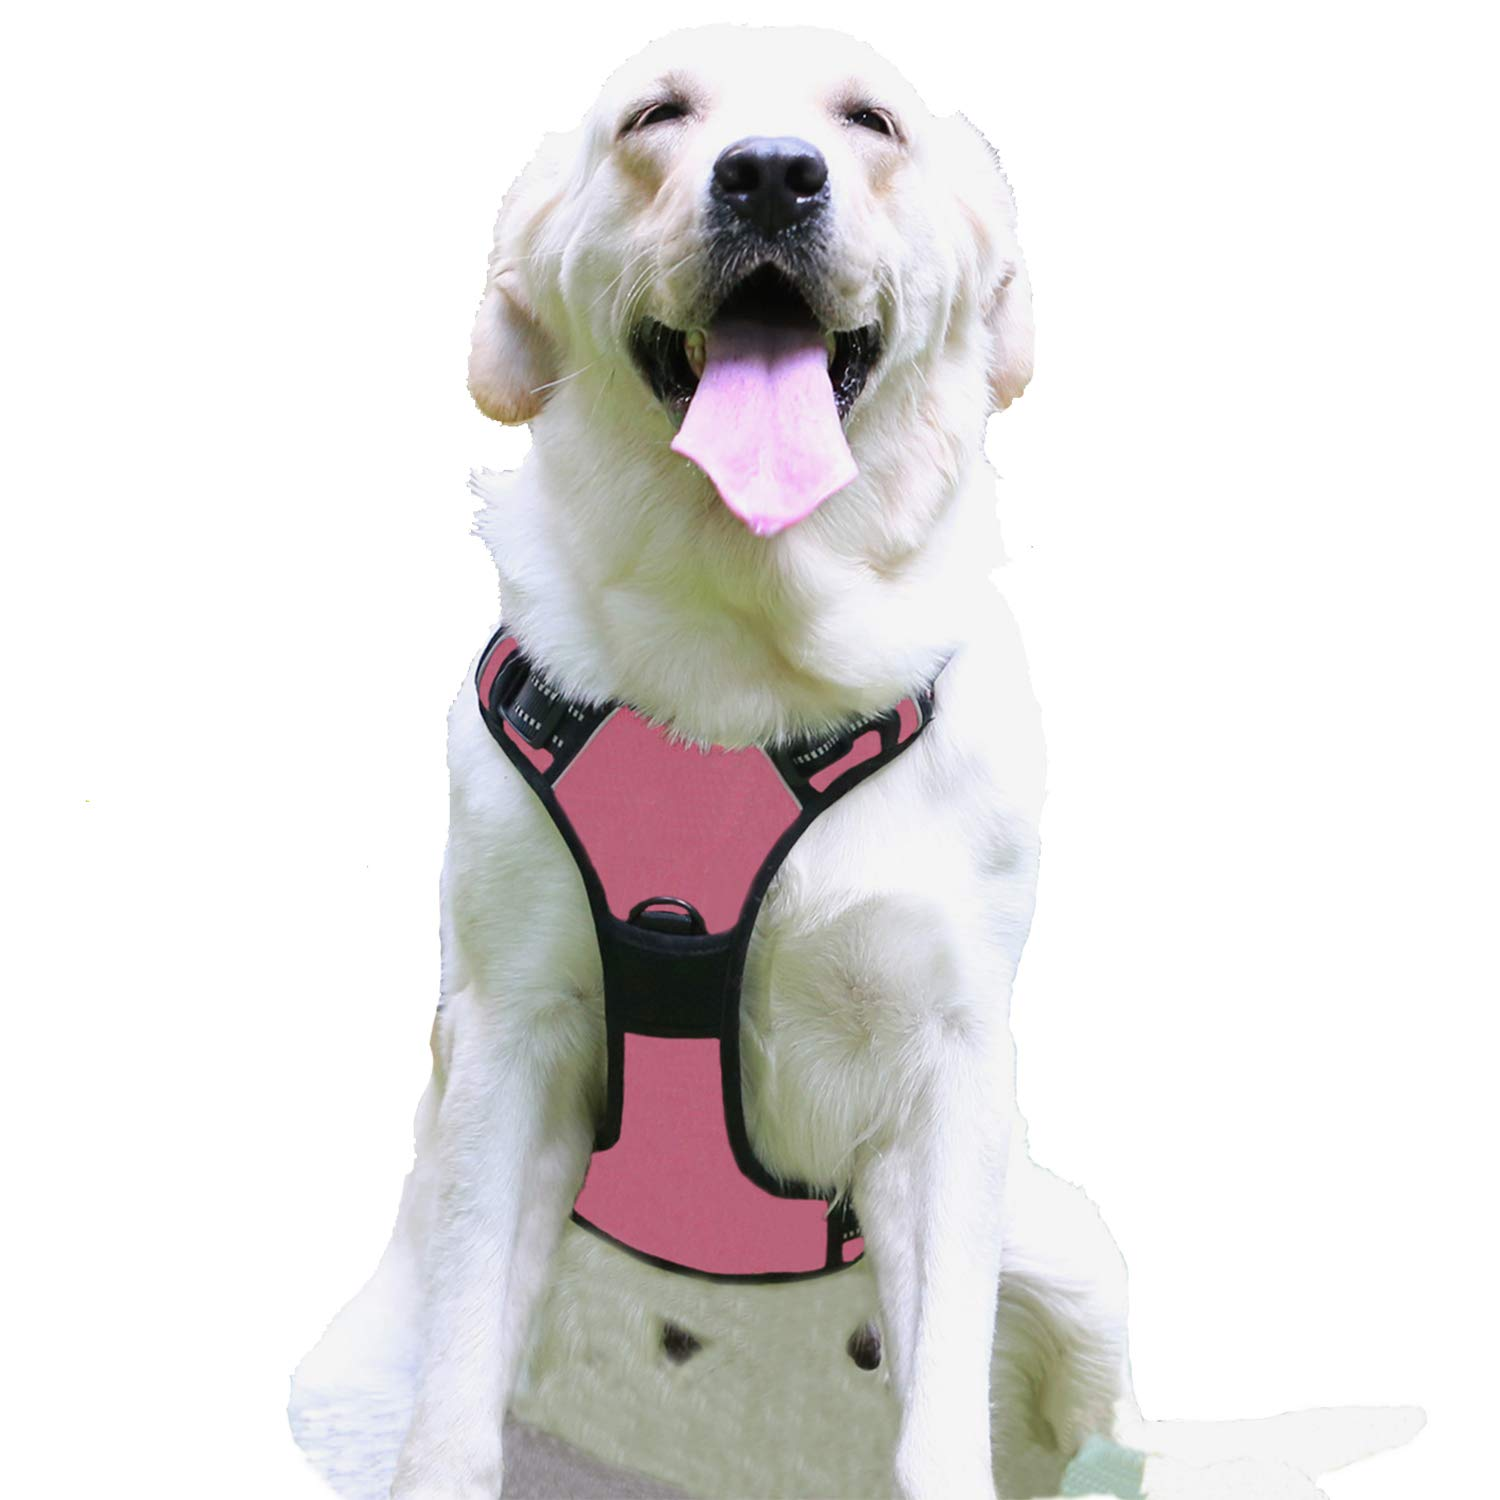 pink Large pink Large Eackrola Dog Harness No Pull Pet Harness Adjustable Outdoor Pet Vest 3M Reflective Oxford Compound Material Vest for Dogs Easy Walk Control for Small Medium Large Dogs (pink,L)